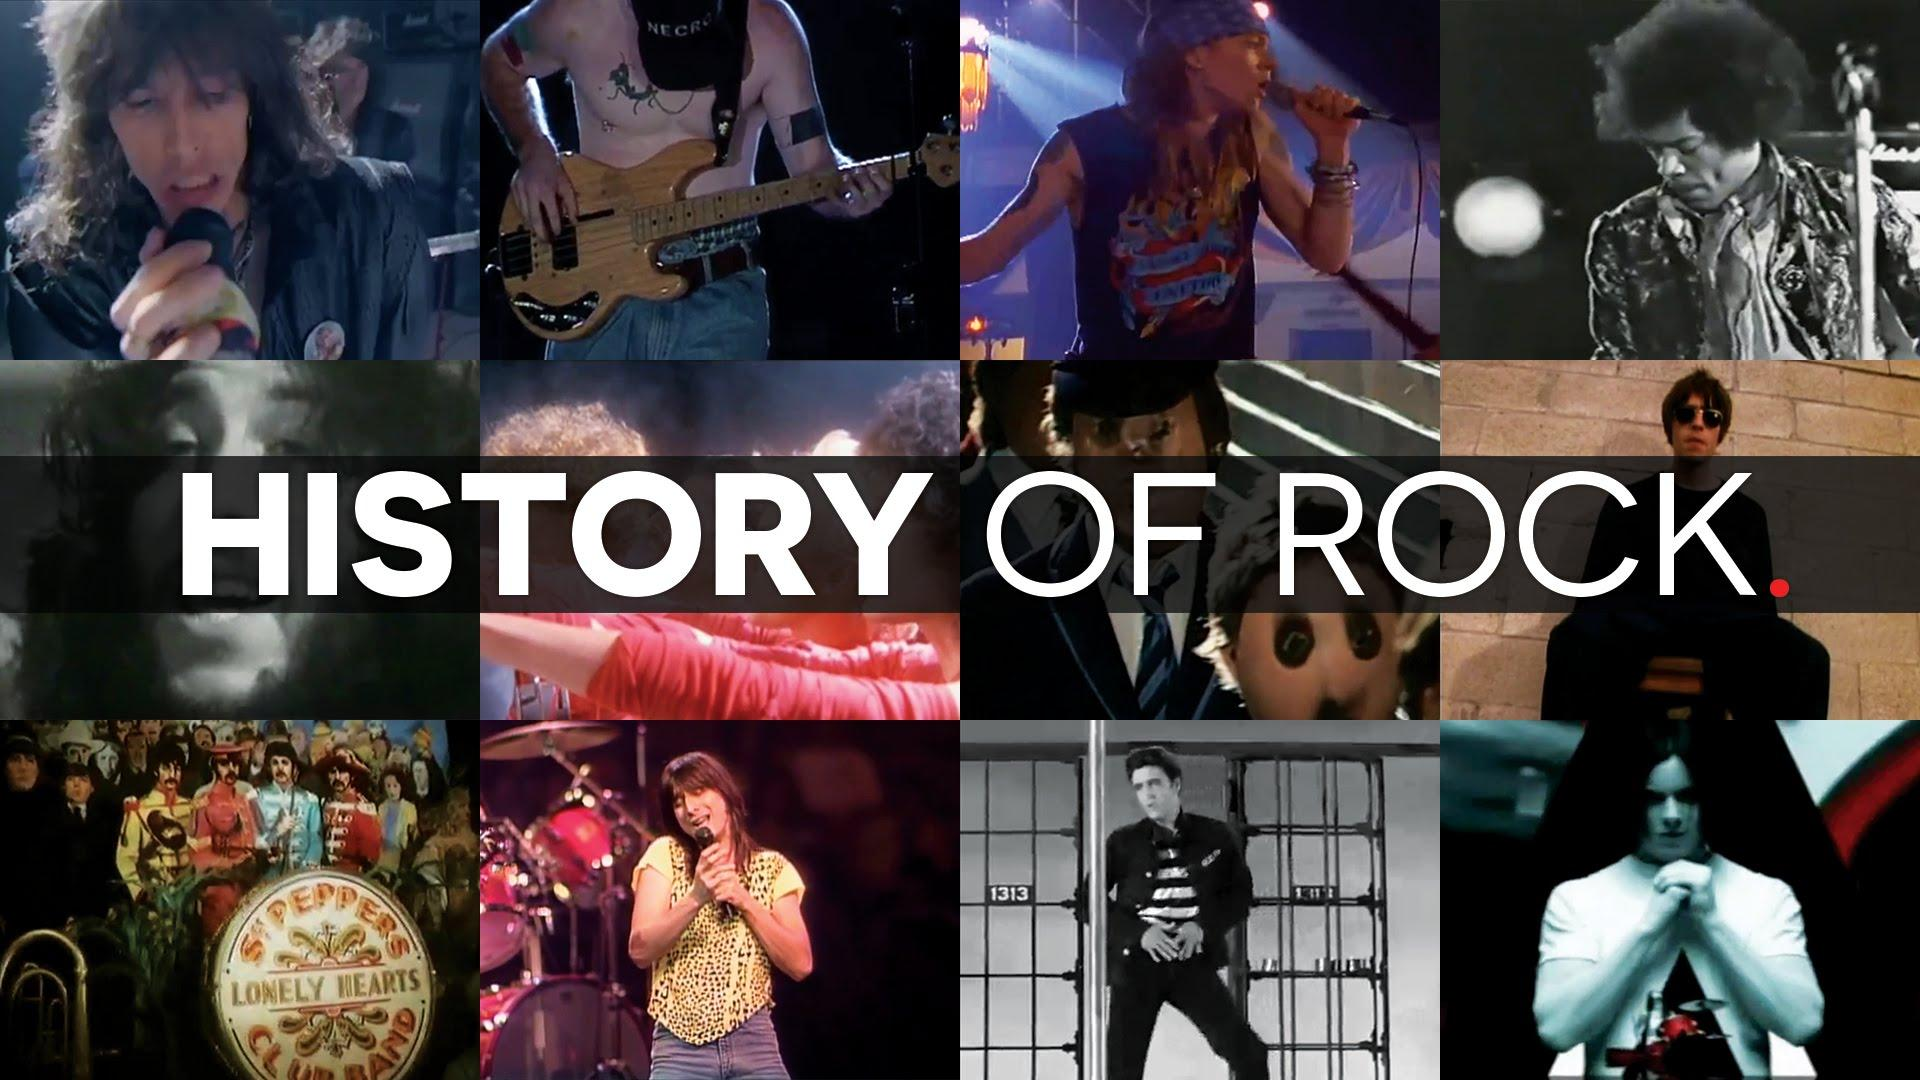 """songs that developed rock music essay Simon frith and angela mcrobbie published a fine theoretical essay, """"rock and women's music developed love songs, are inaccurate women's music was."""